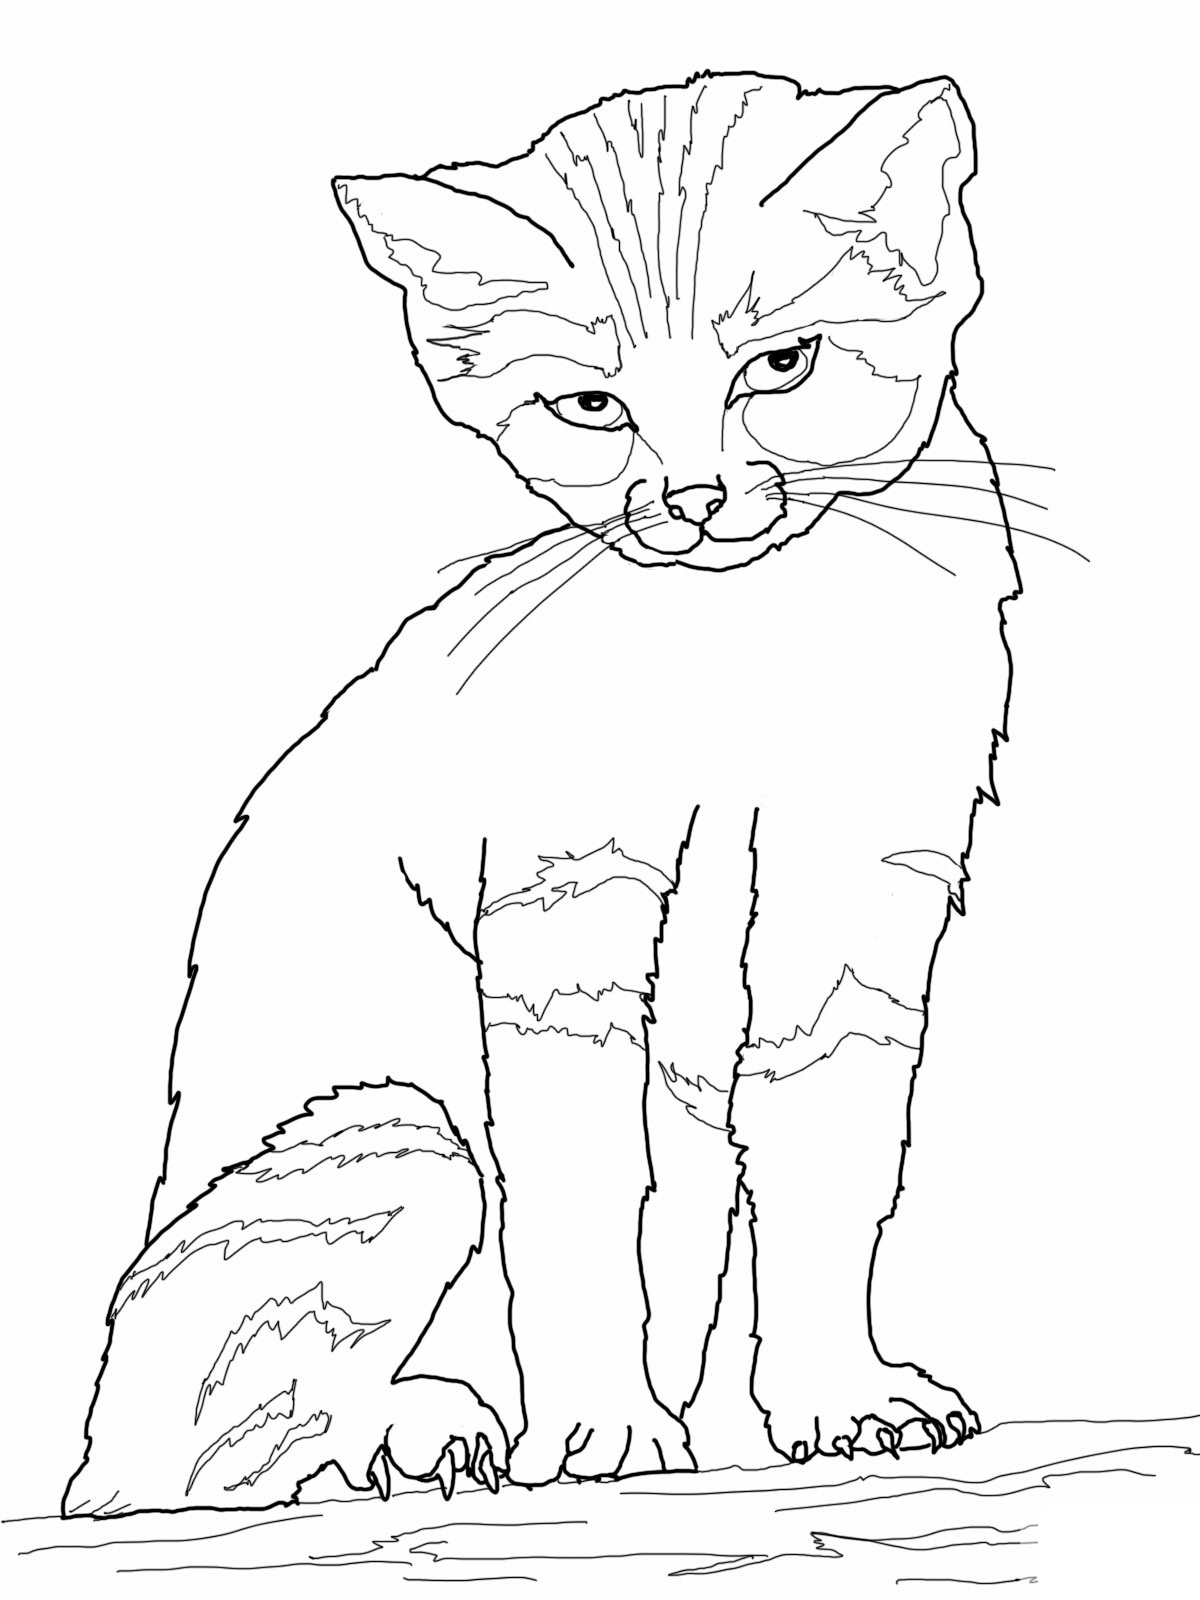 Free Printable Cat Coloring Pages For Kids Kitten Coloring Pages To Print